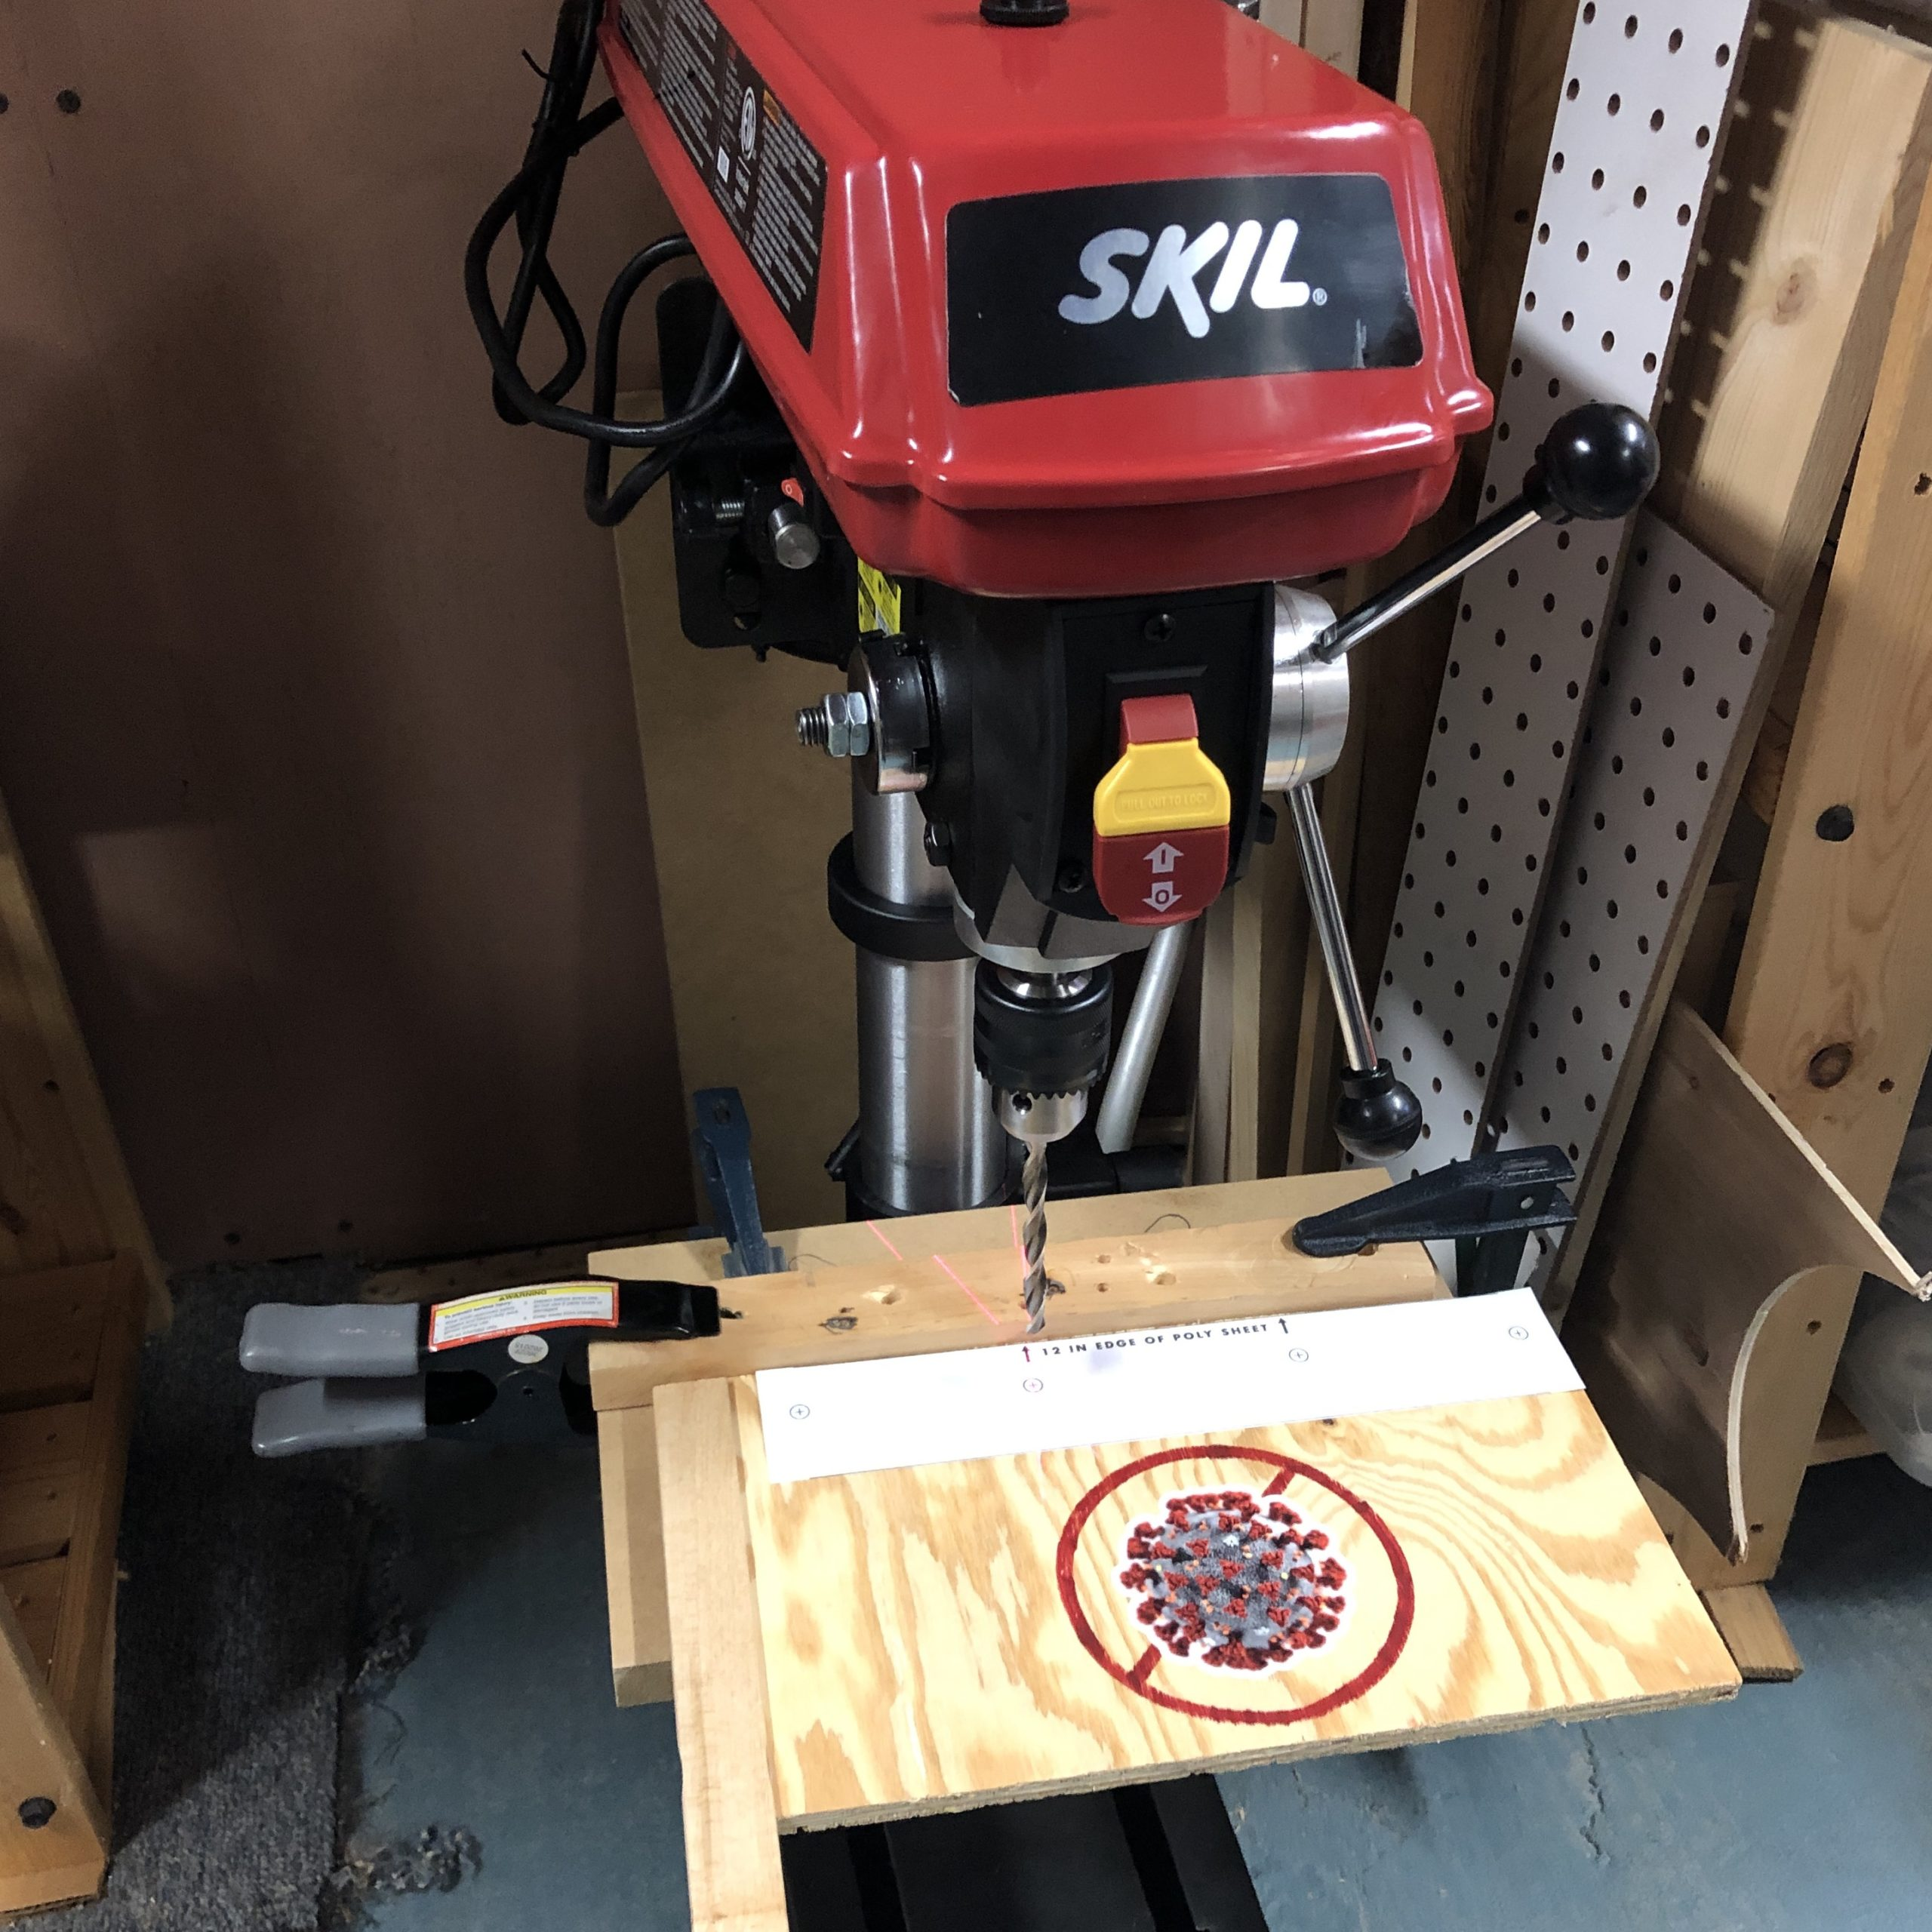 Using his drill press, Josh quickly made holes in the poly shields.